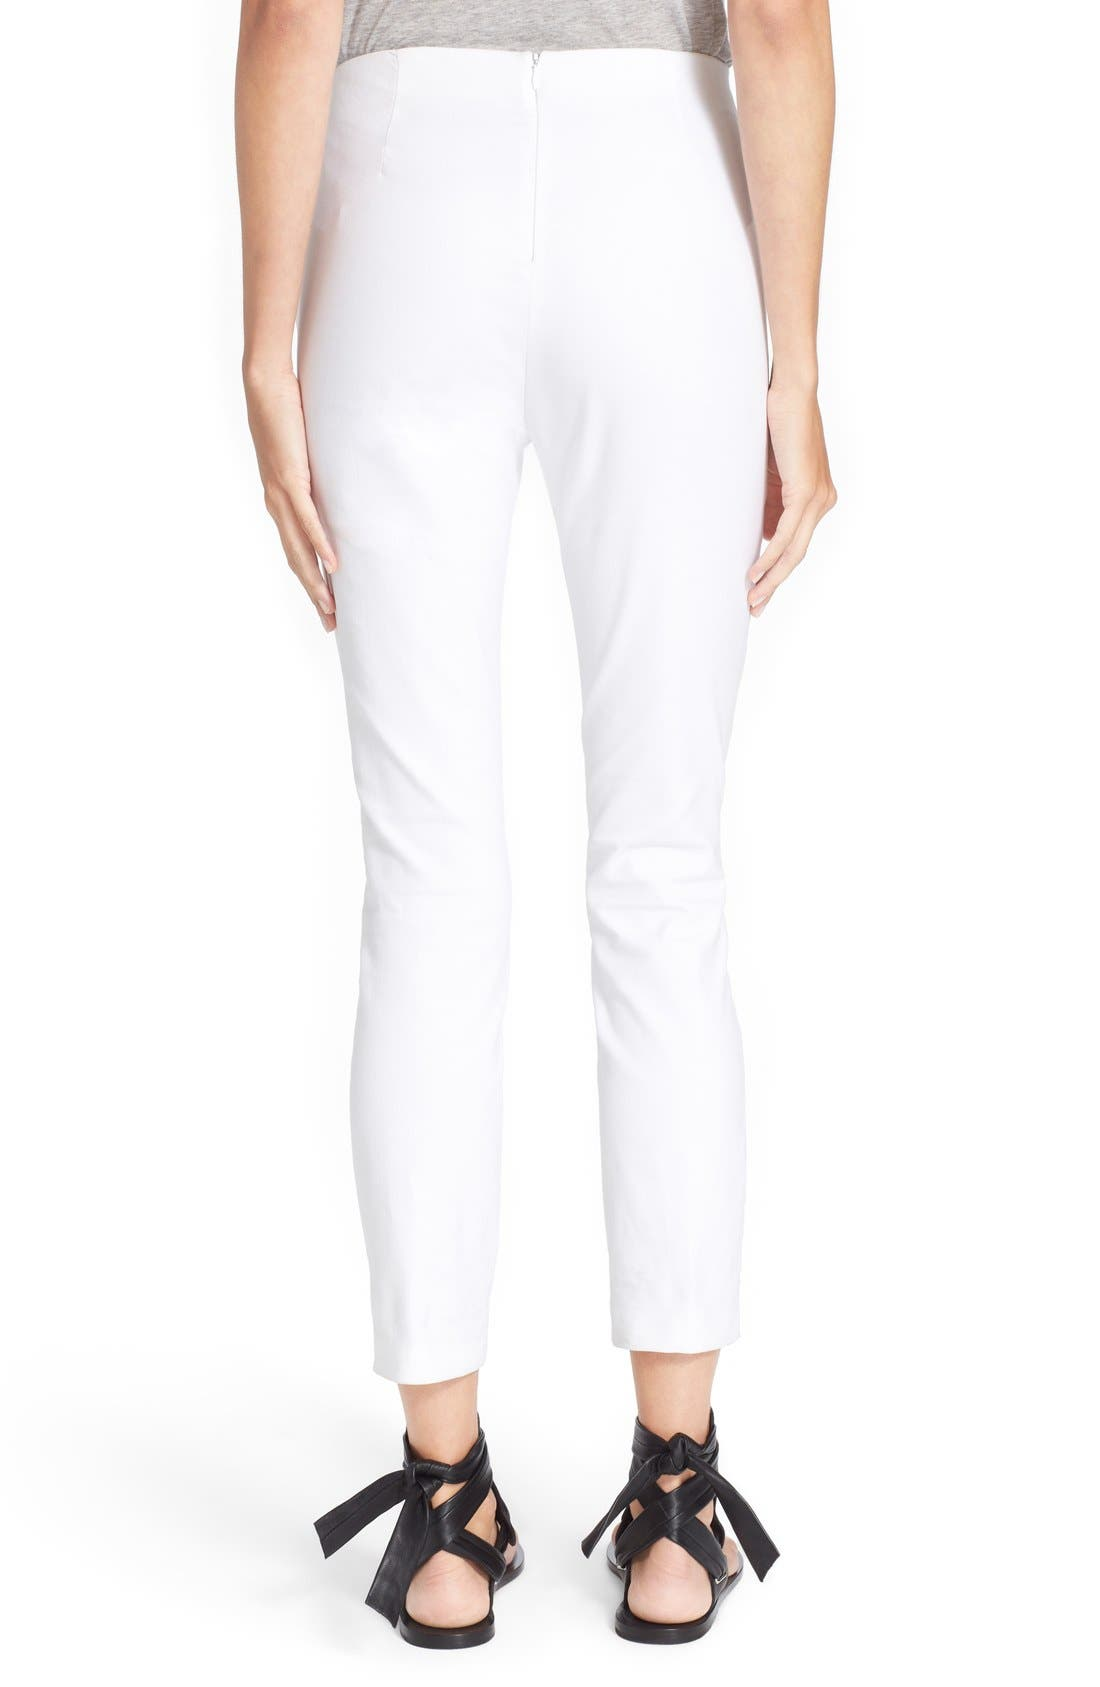 'Simone' Slim Ankle Pants,                             Alternate thumbnail 13, color,                             WHITE